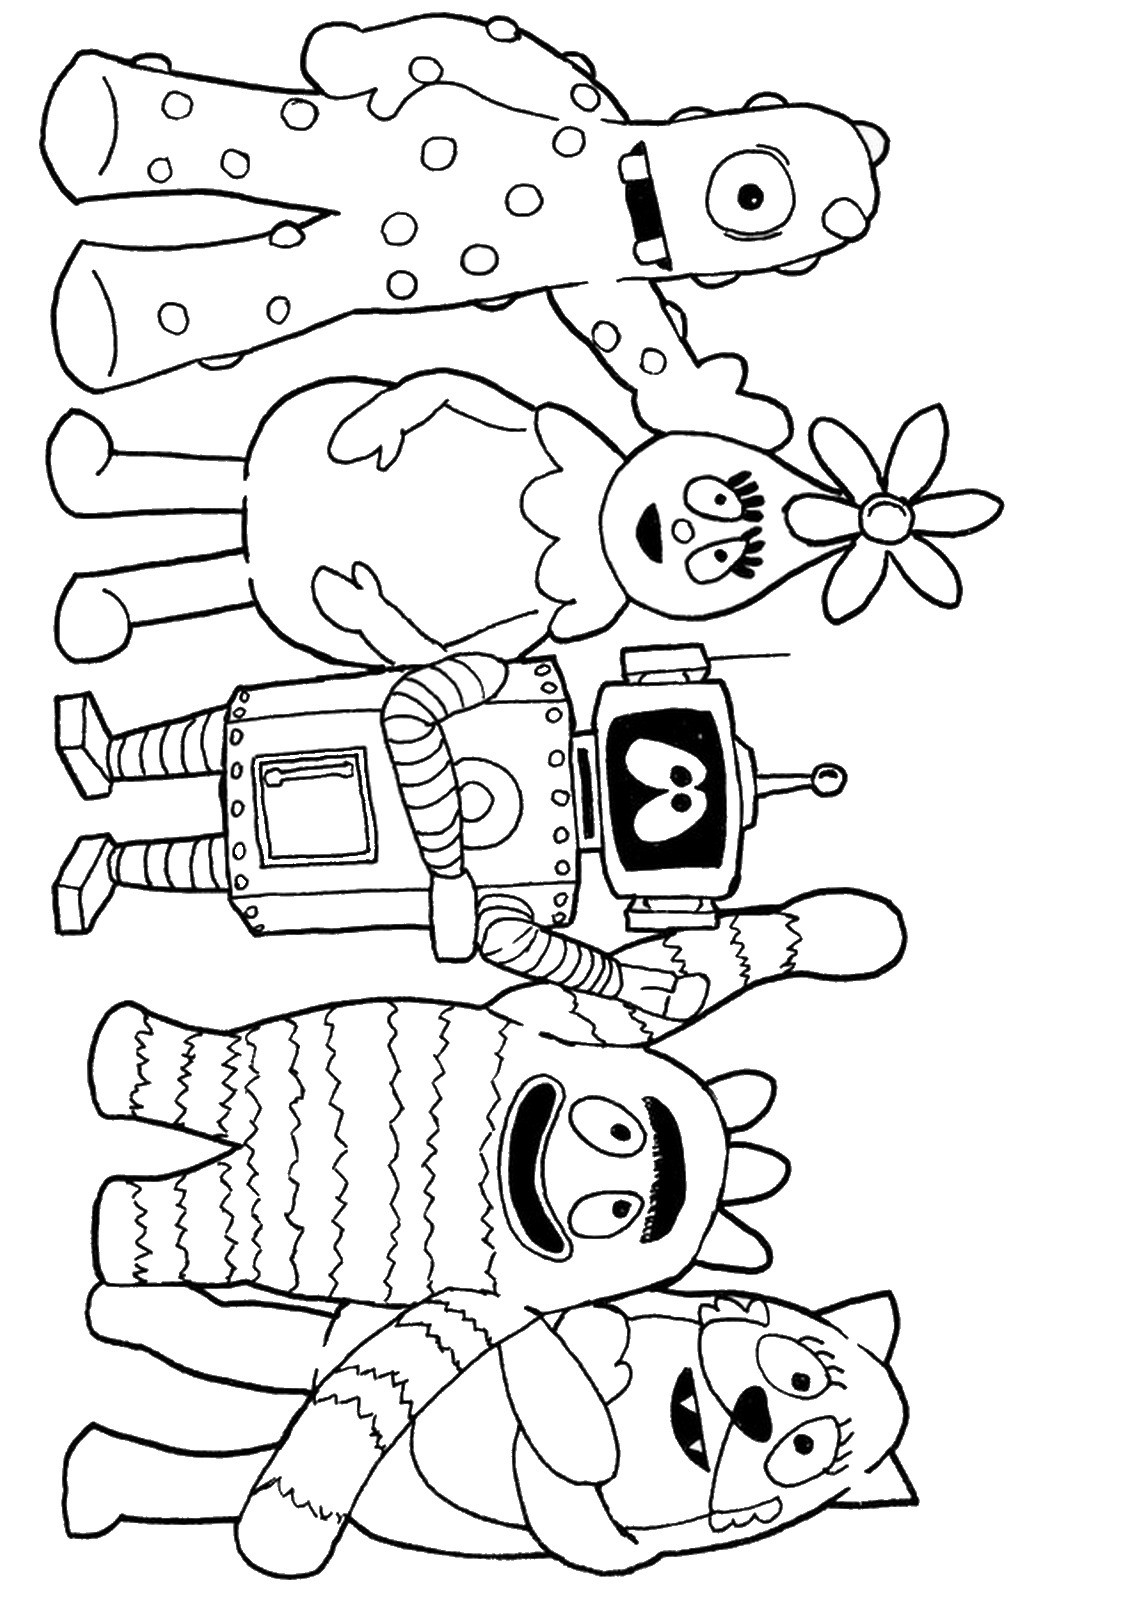 48 Fresh S Coloring Pages You Can Color the Puter to Print Of Printable Puter Coloring Pages Collection